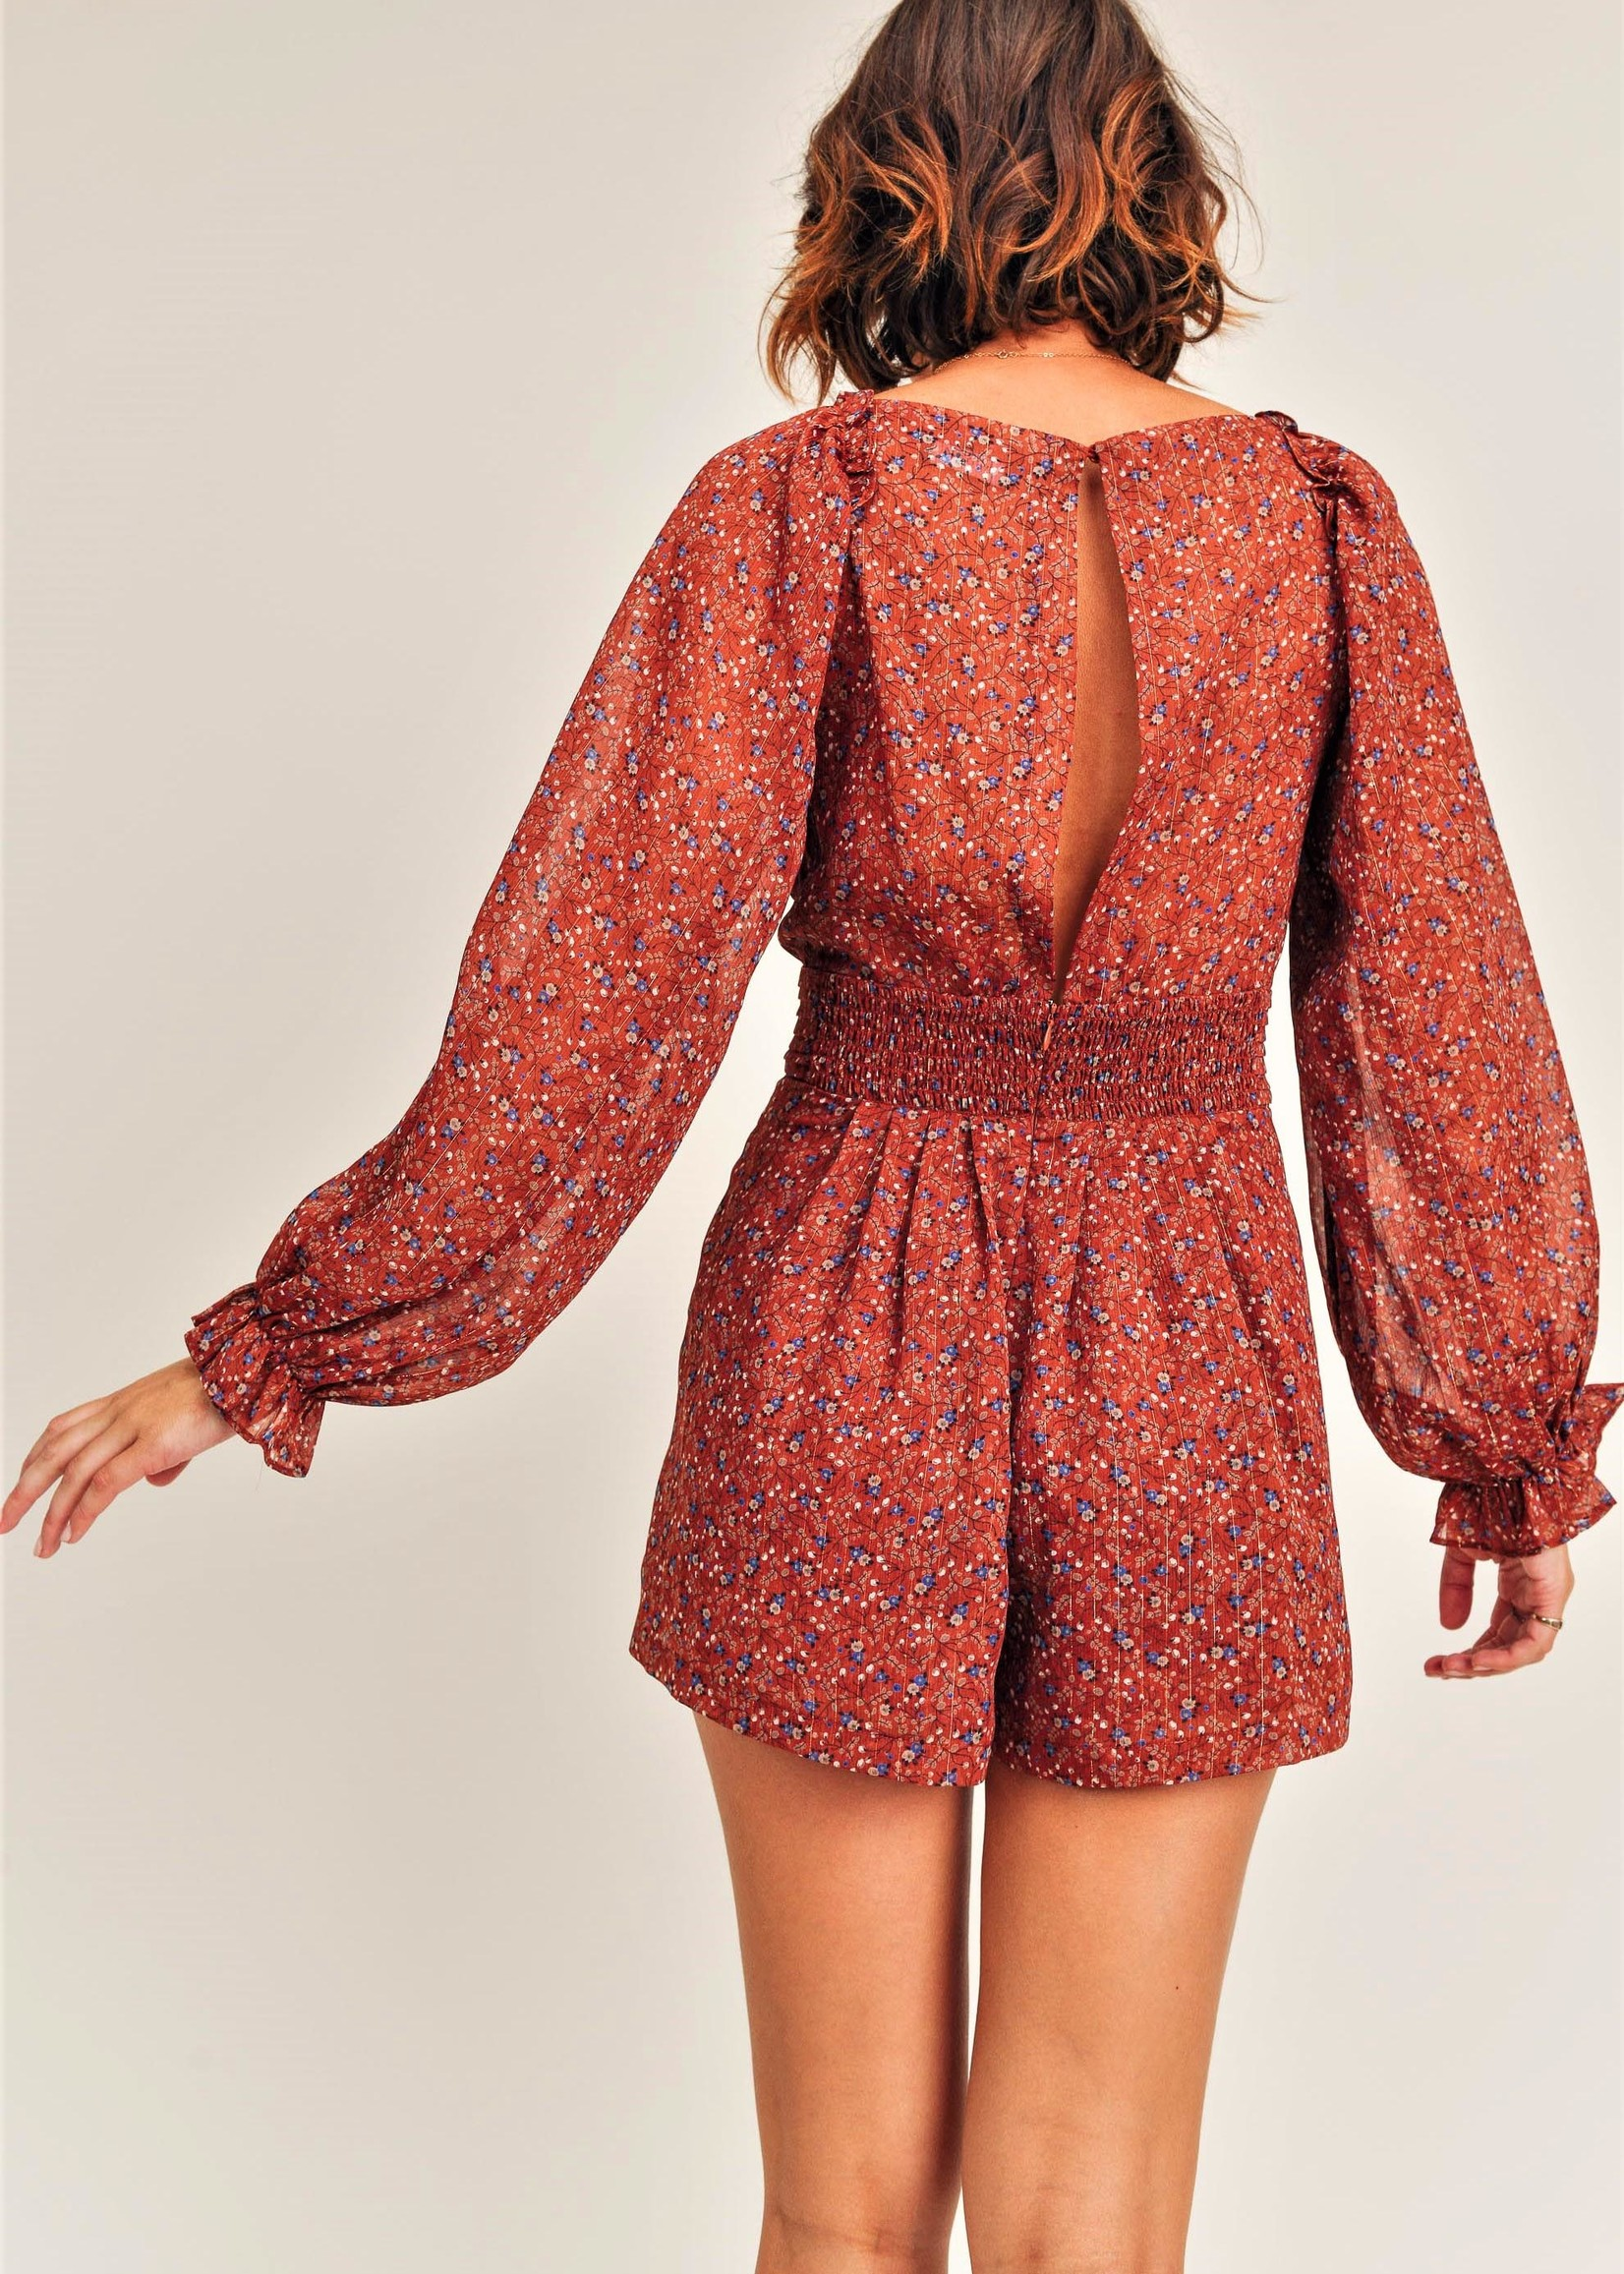 Reset by jane Fall Floral Romper